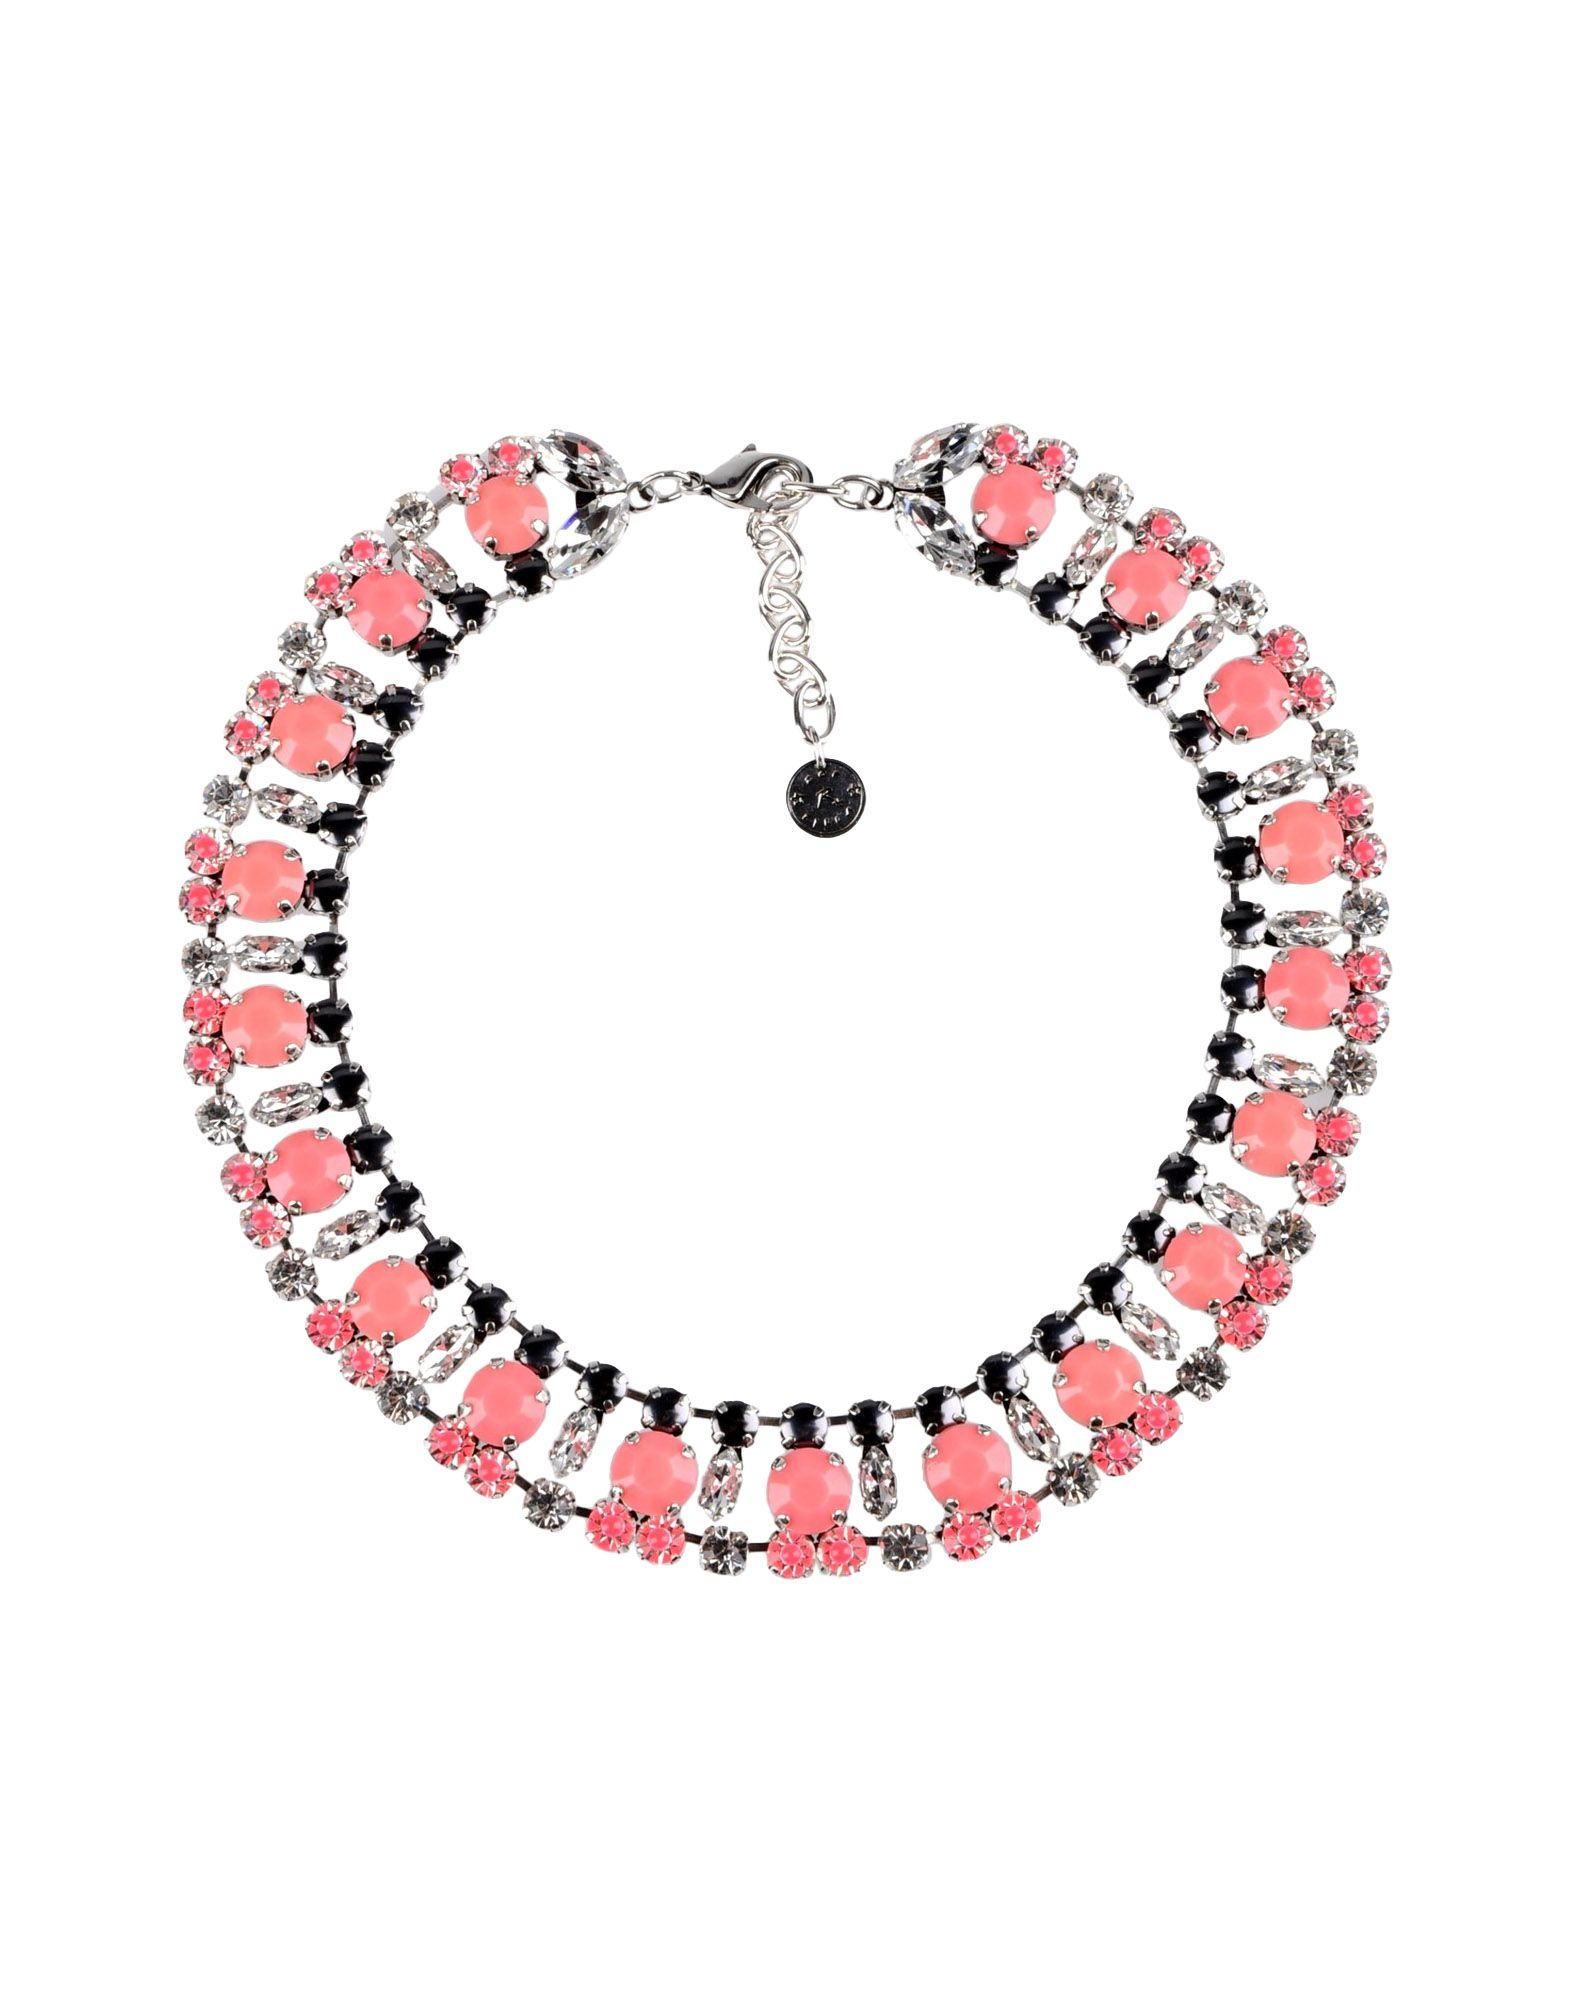 REMINISCENCE Necklace in Pink